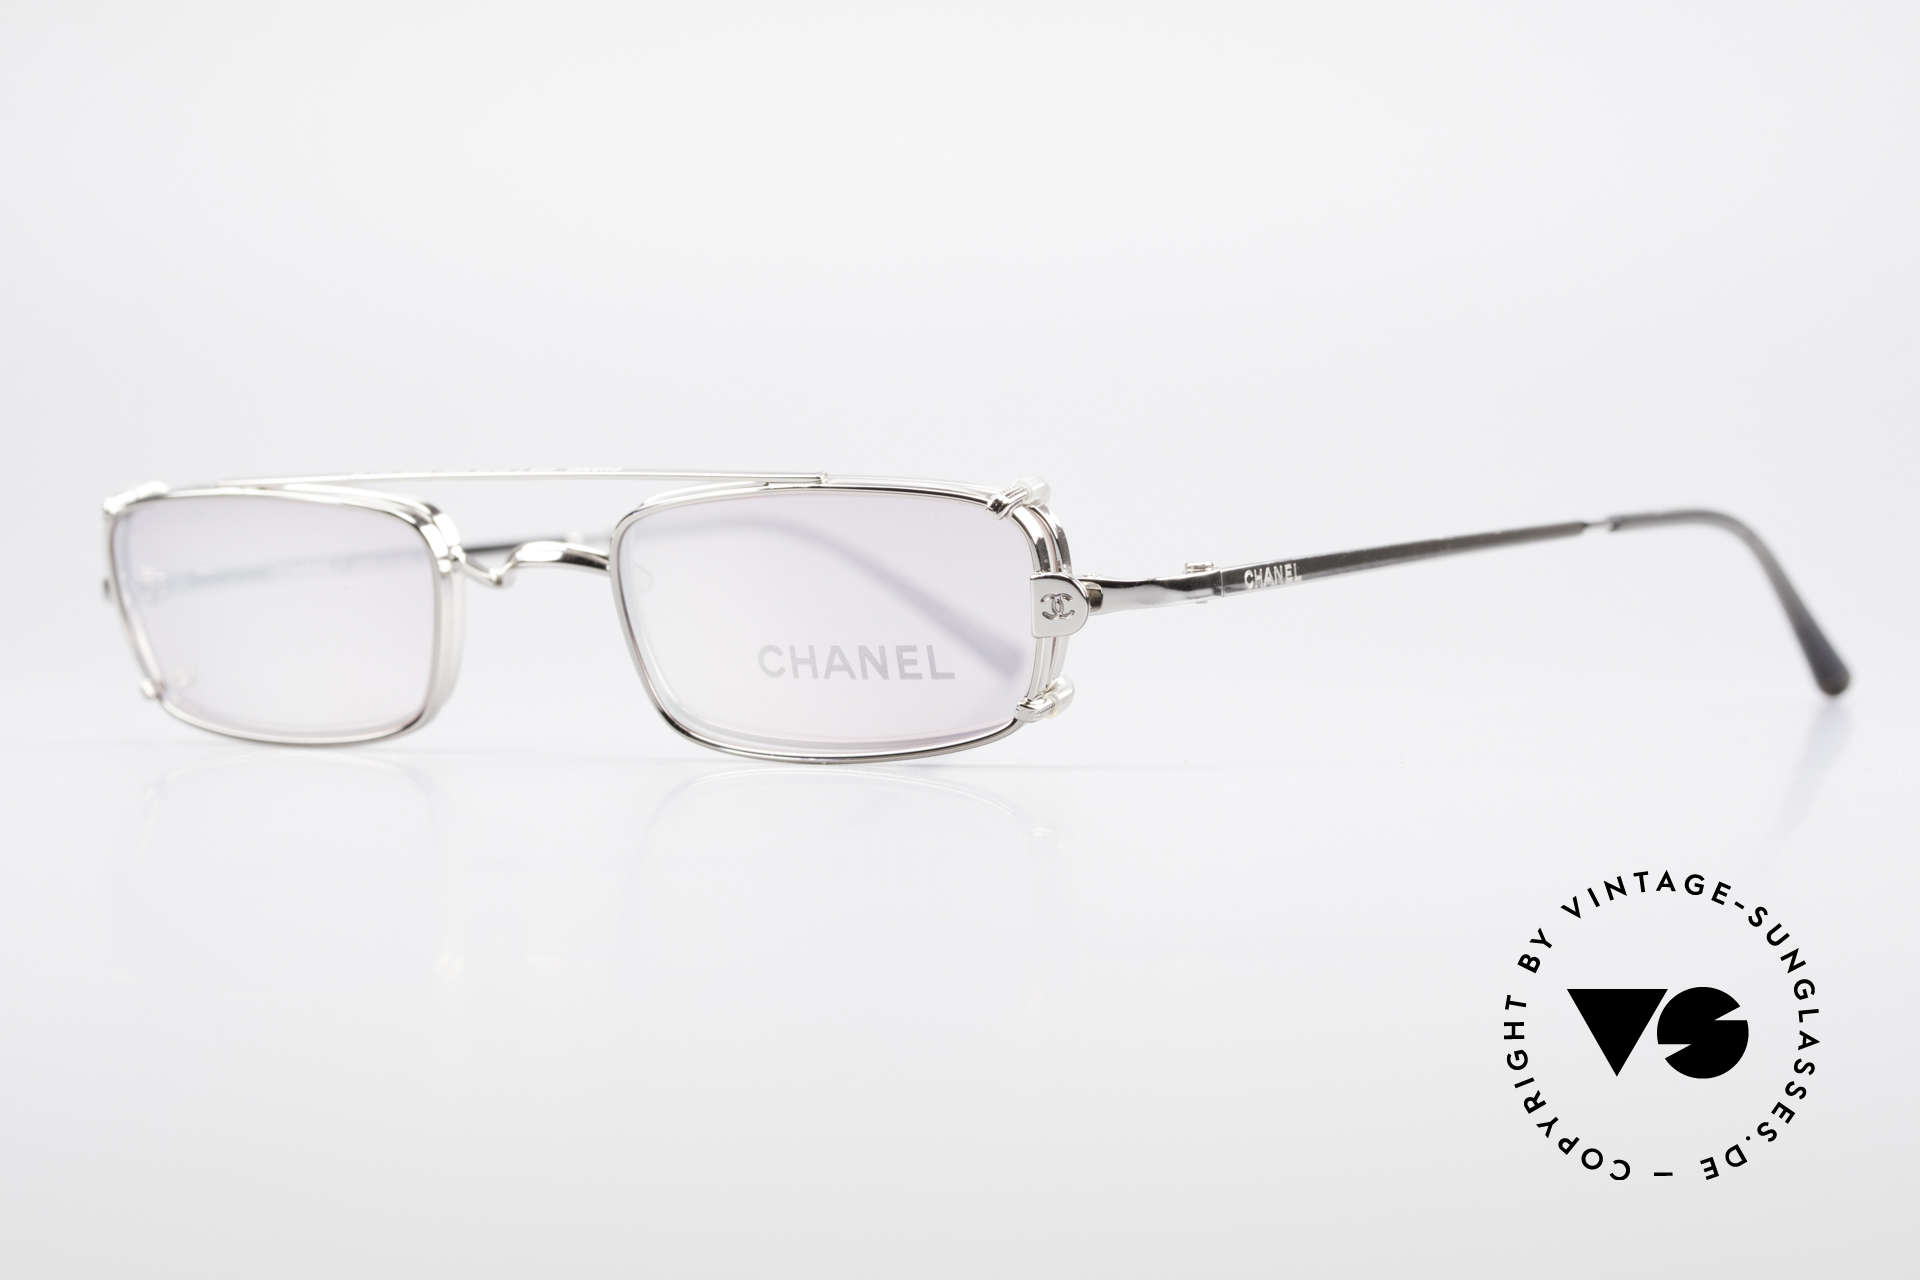 Chanel 2038 Pink Luxury Glasses Clip On, great combination of 'luxury lifestyle' & functionality, Made for Women